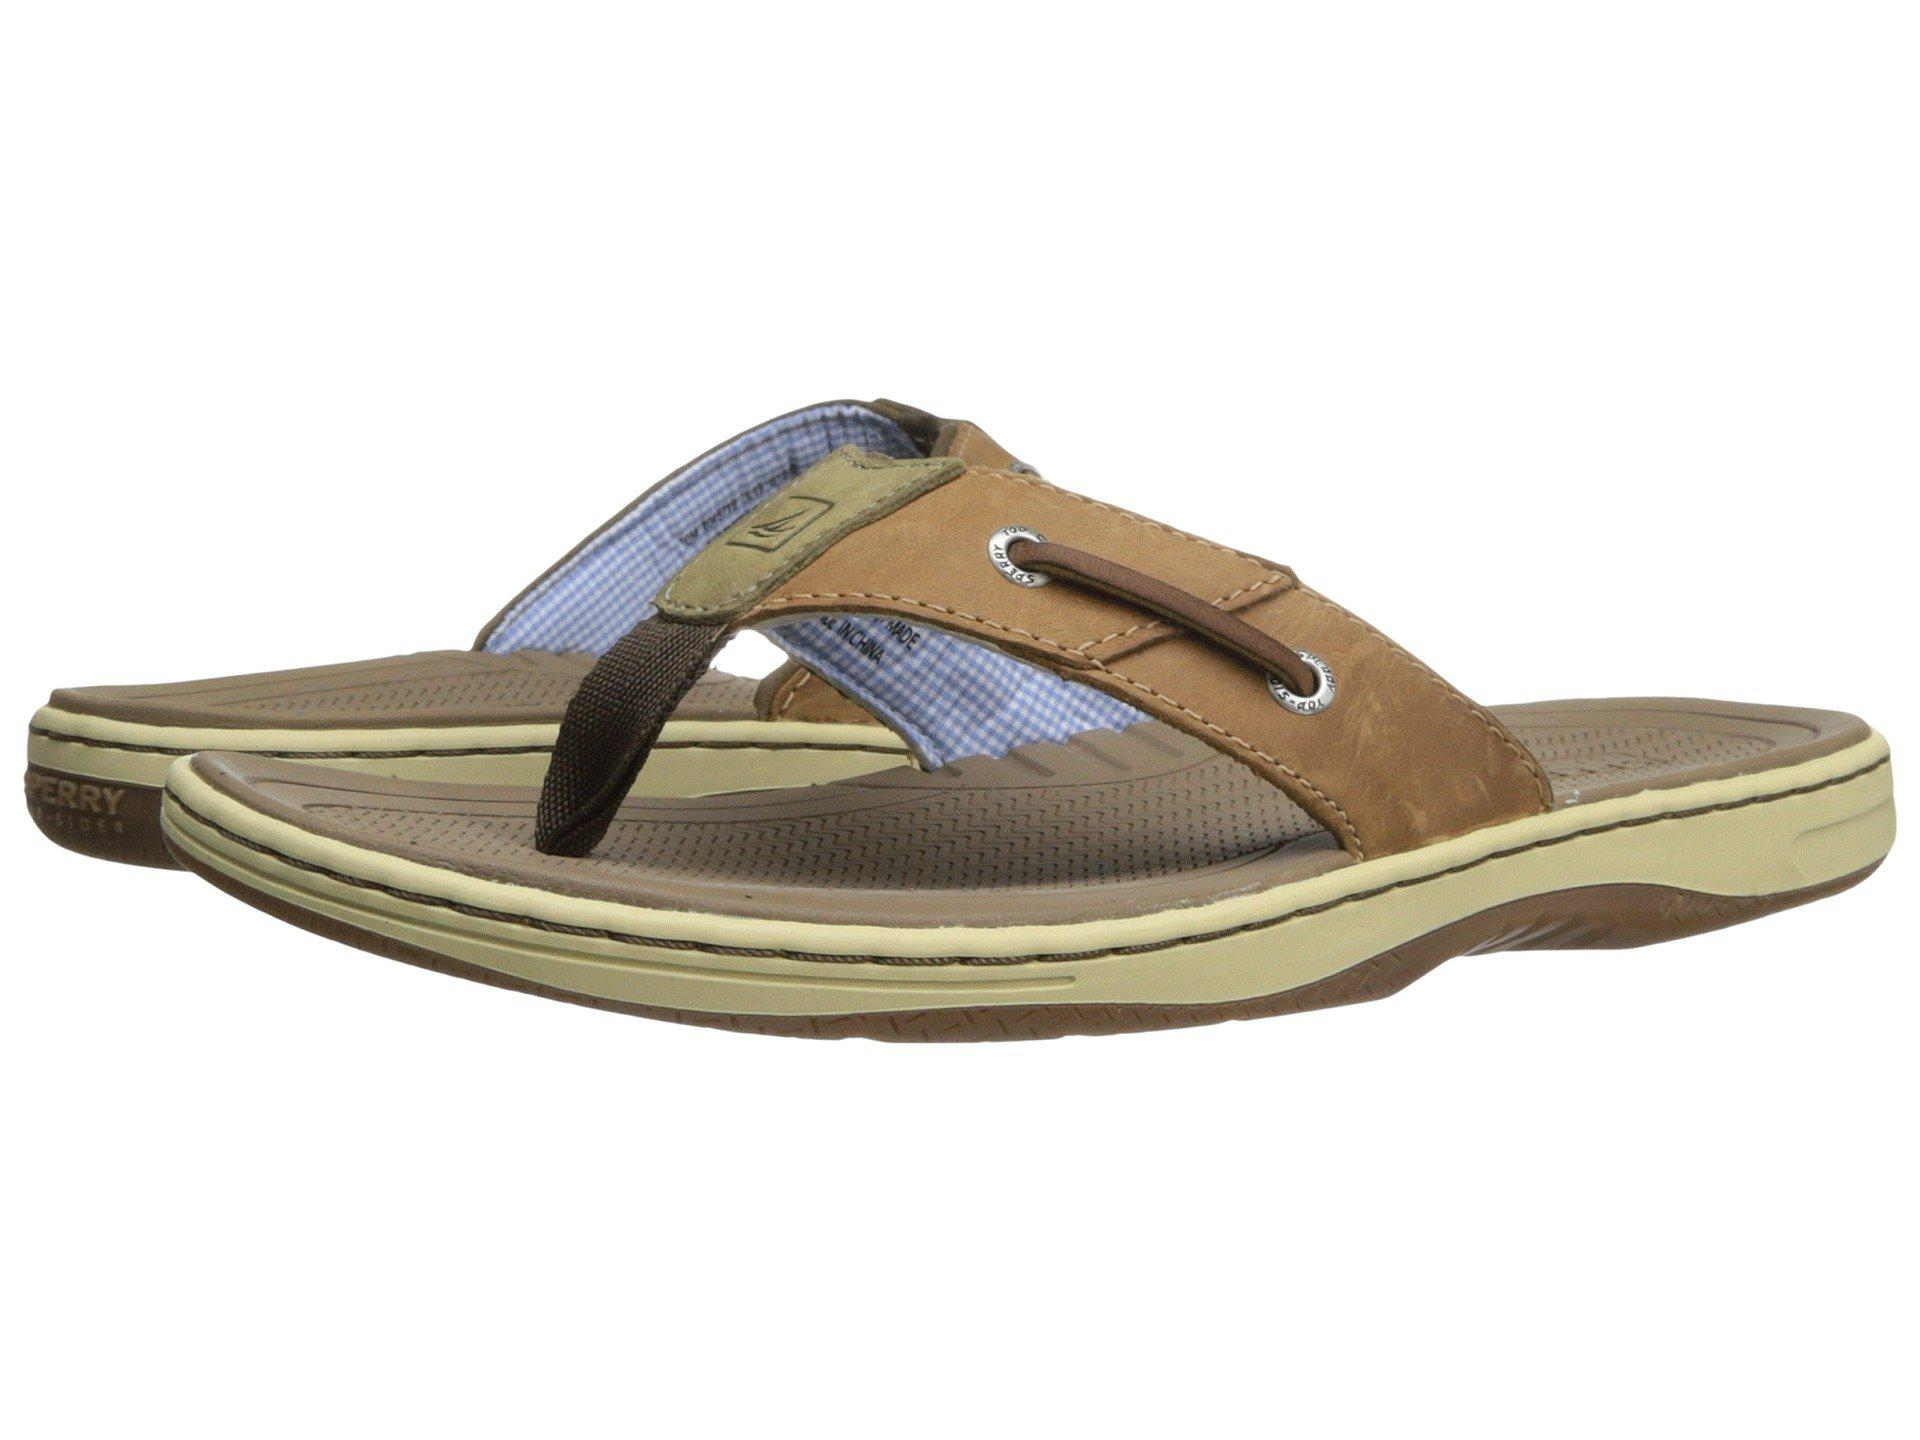 fbf65c9af80 Lyst - Sperry Top-Sider Baitfish Thong (brown) Men s Sandals in ...